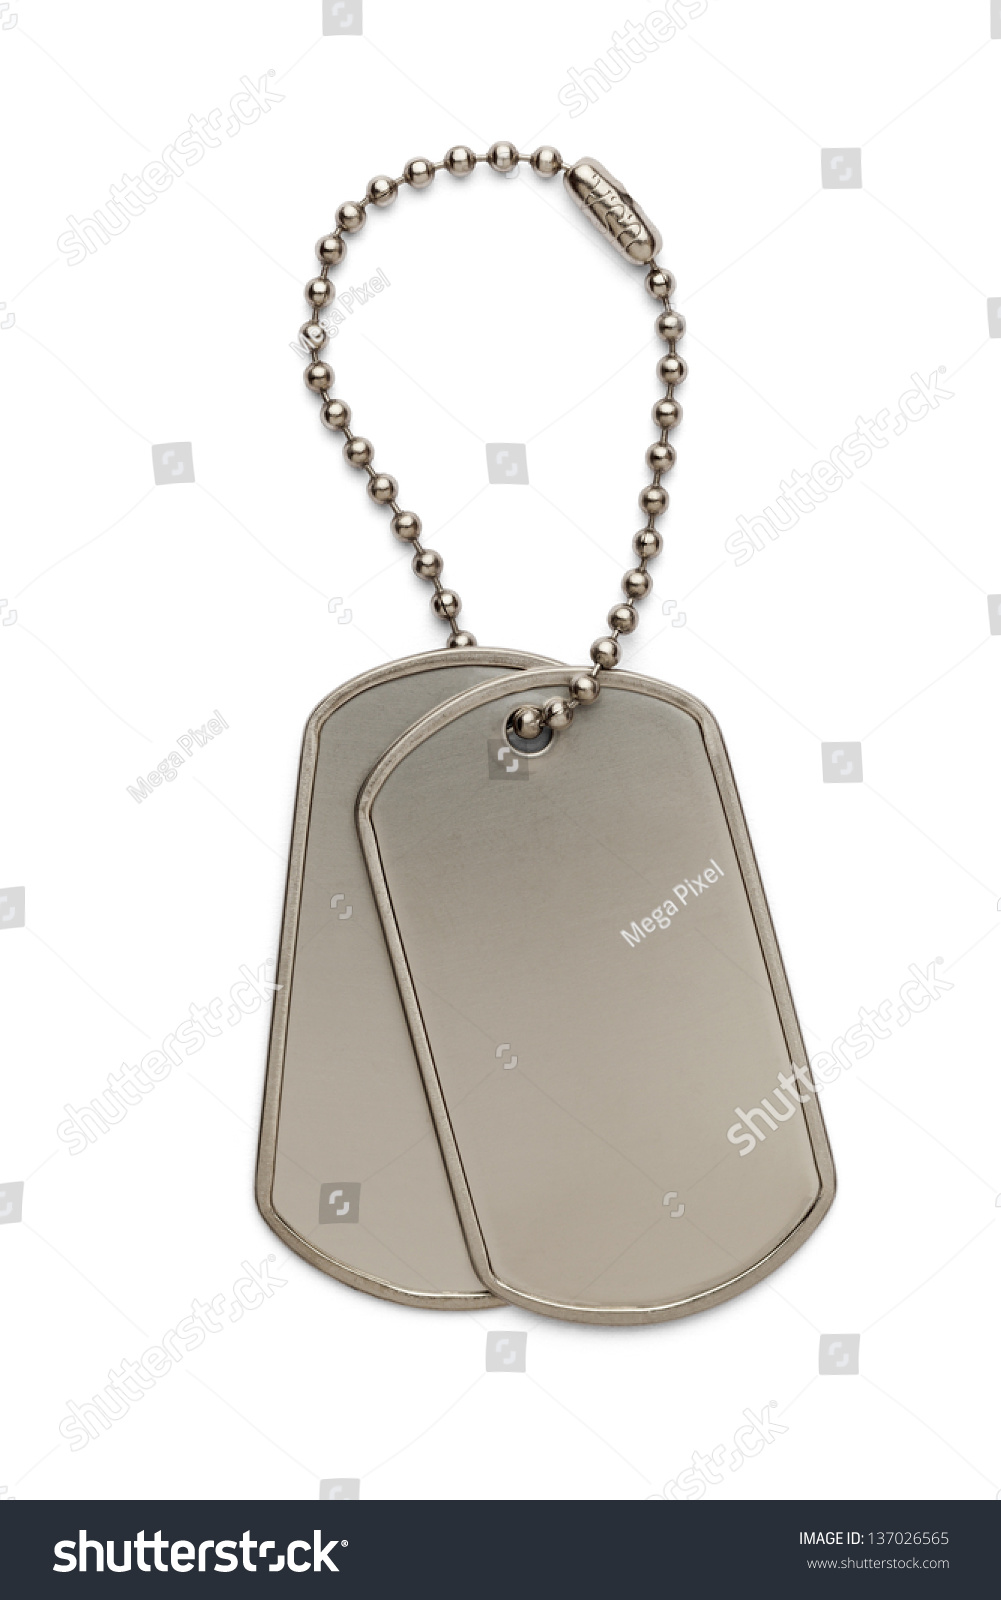 how to get bf1 veteran dog tag